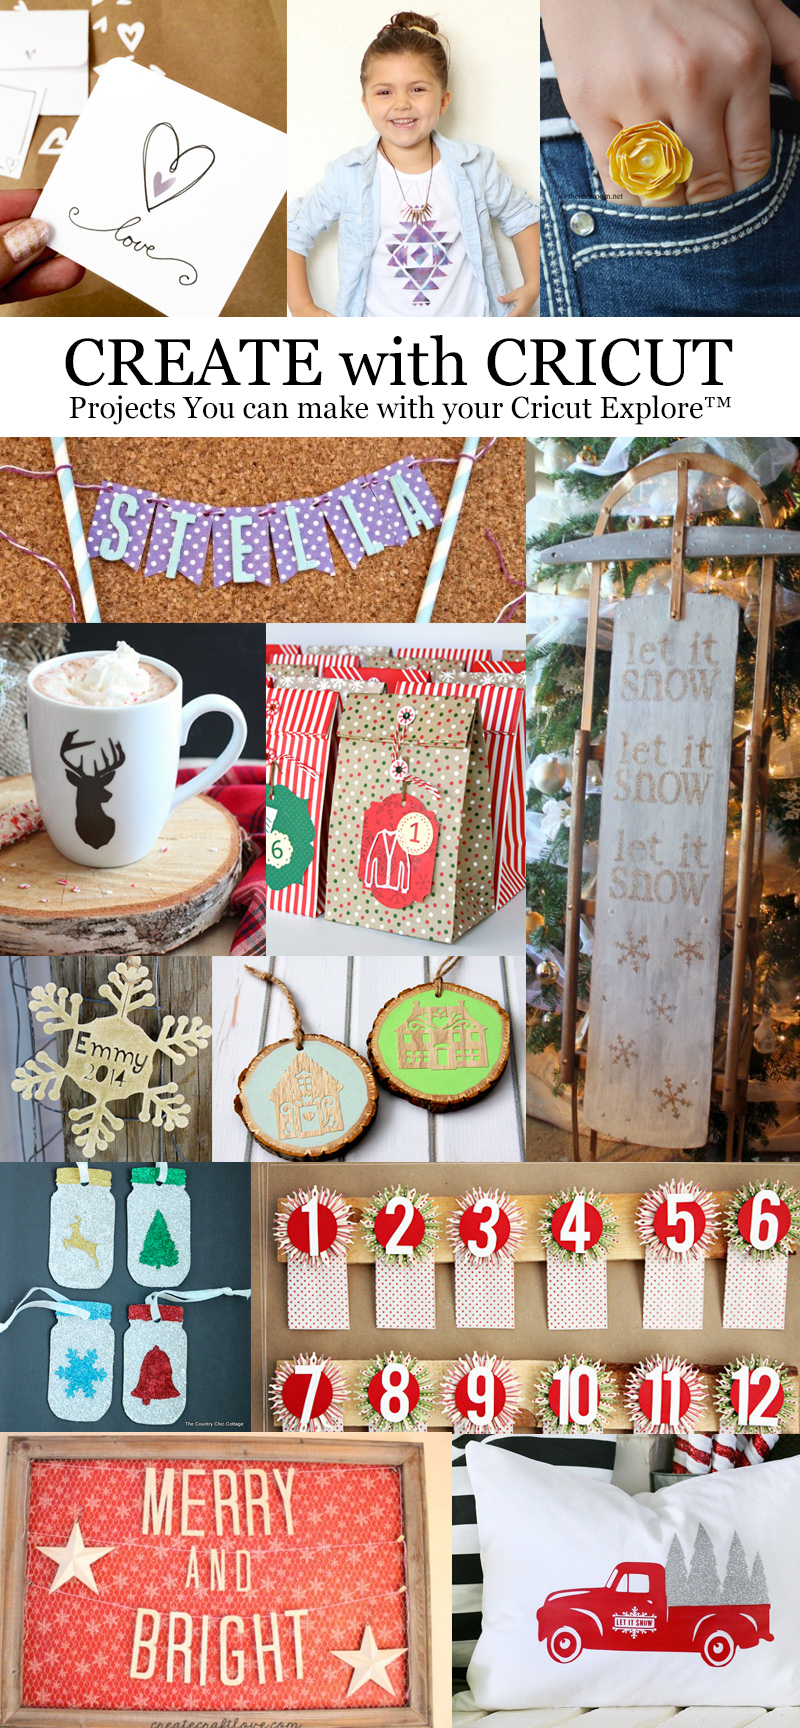 13 Festive Ways to Create with Cricut | Hands Occupied